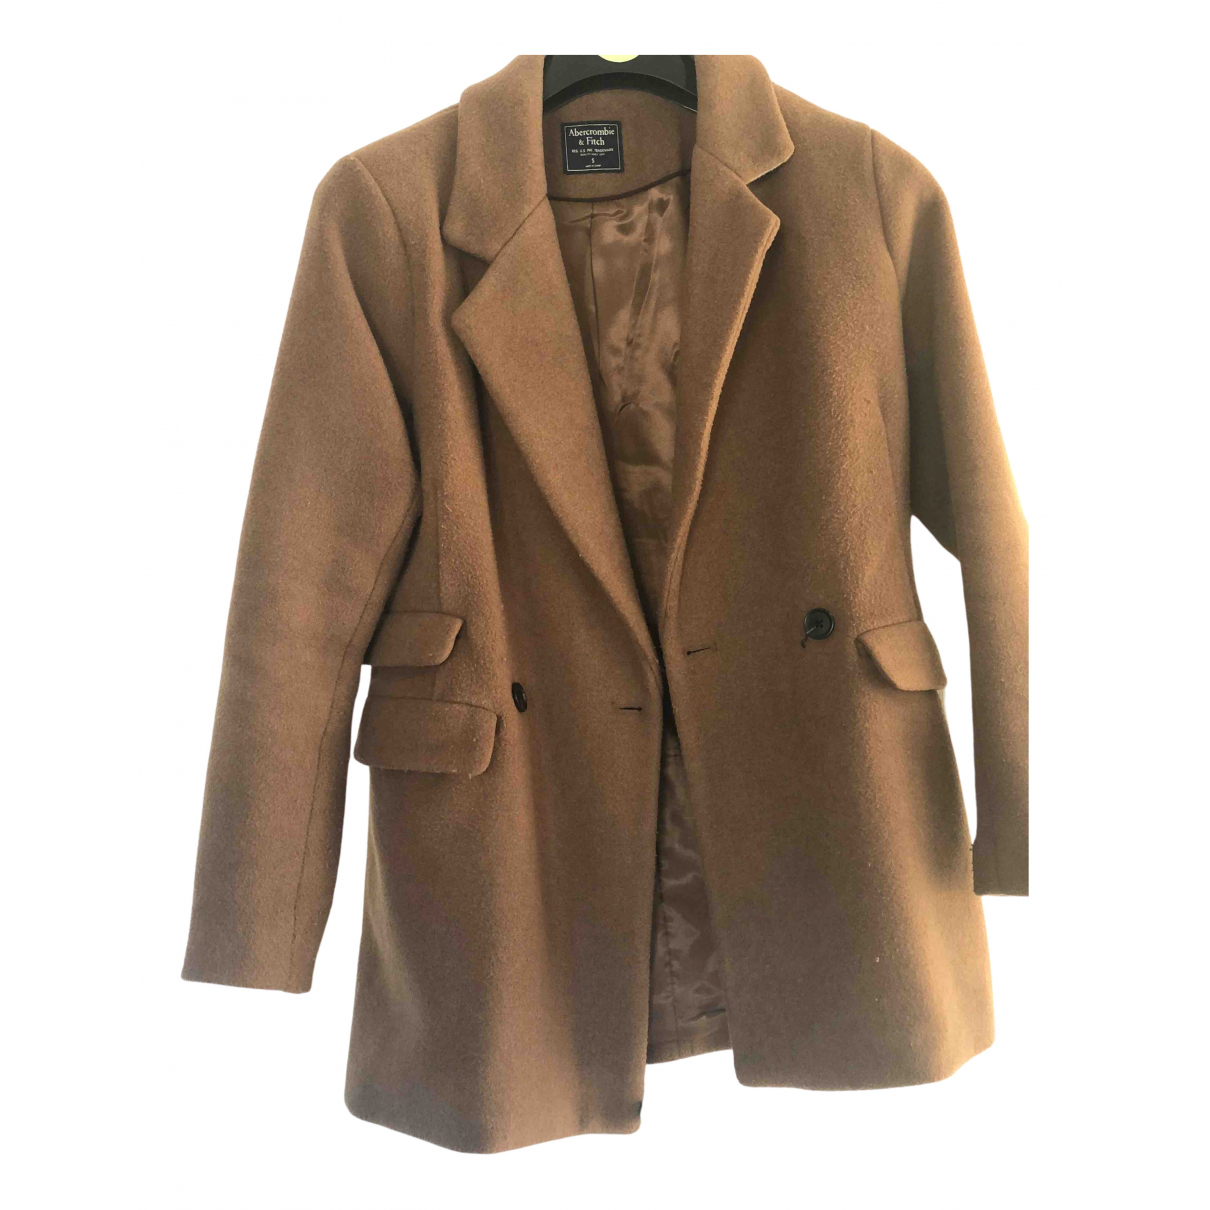 Abercrombie & Fitch \N Camel coat for Women S International